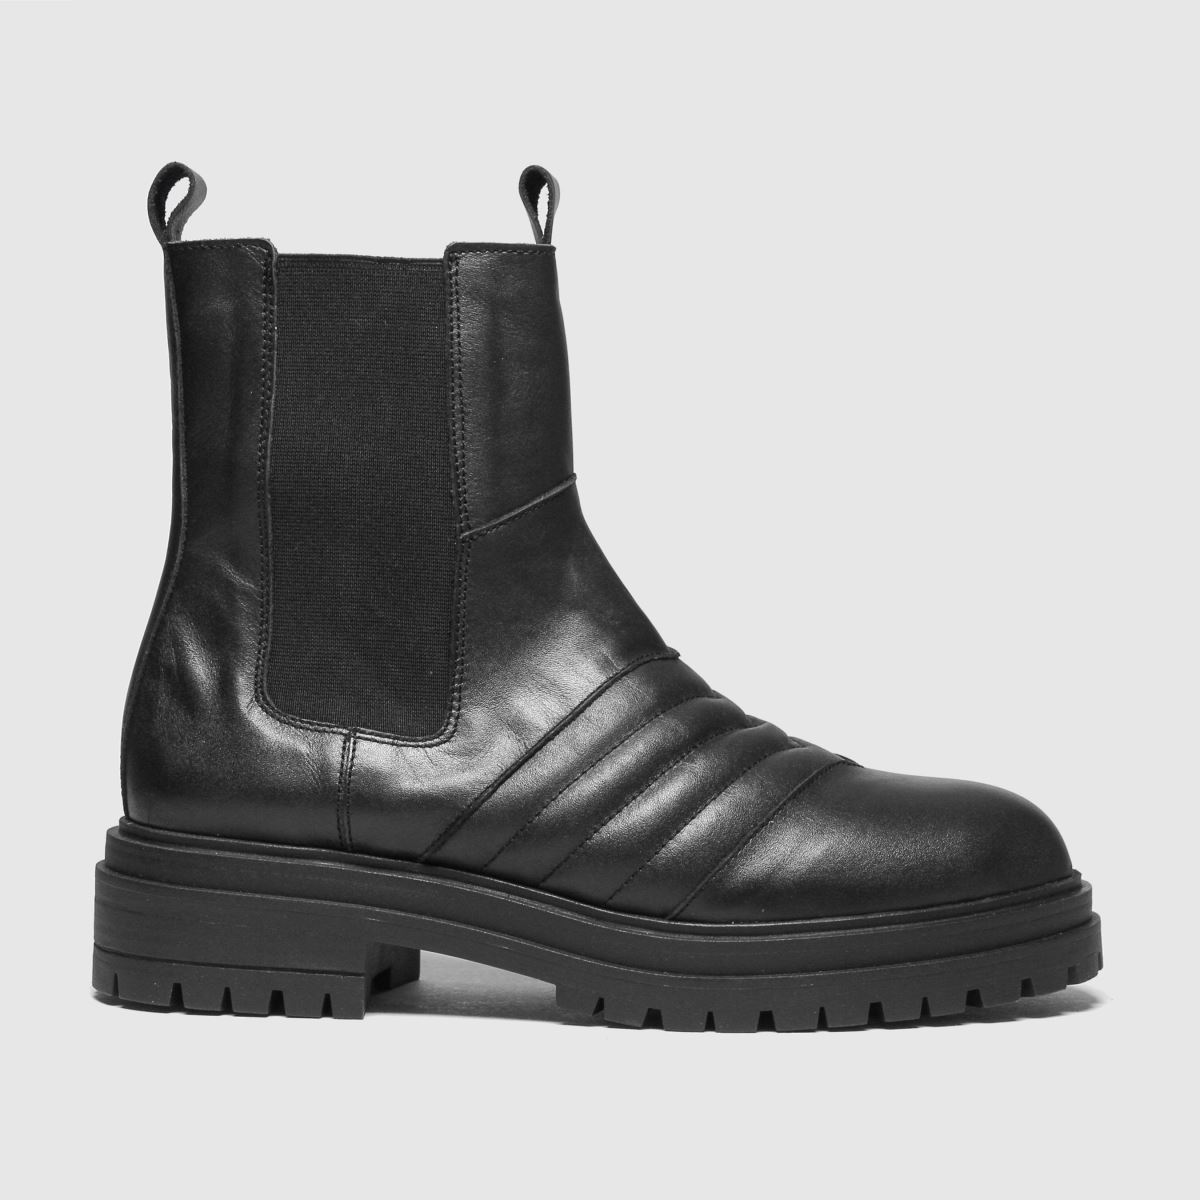 Schuh Black Alana Padded Leather Chunky Boots